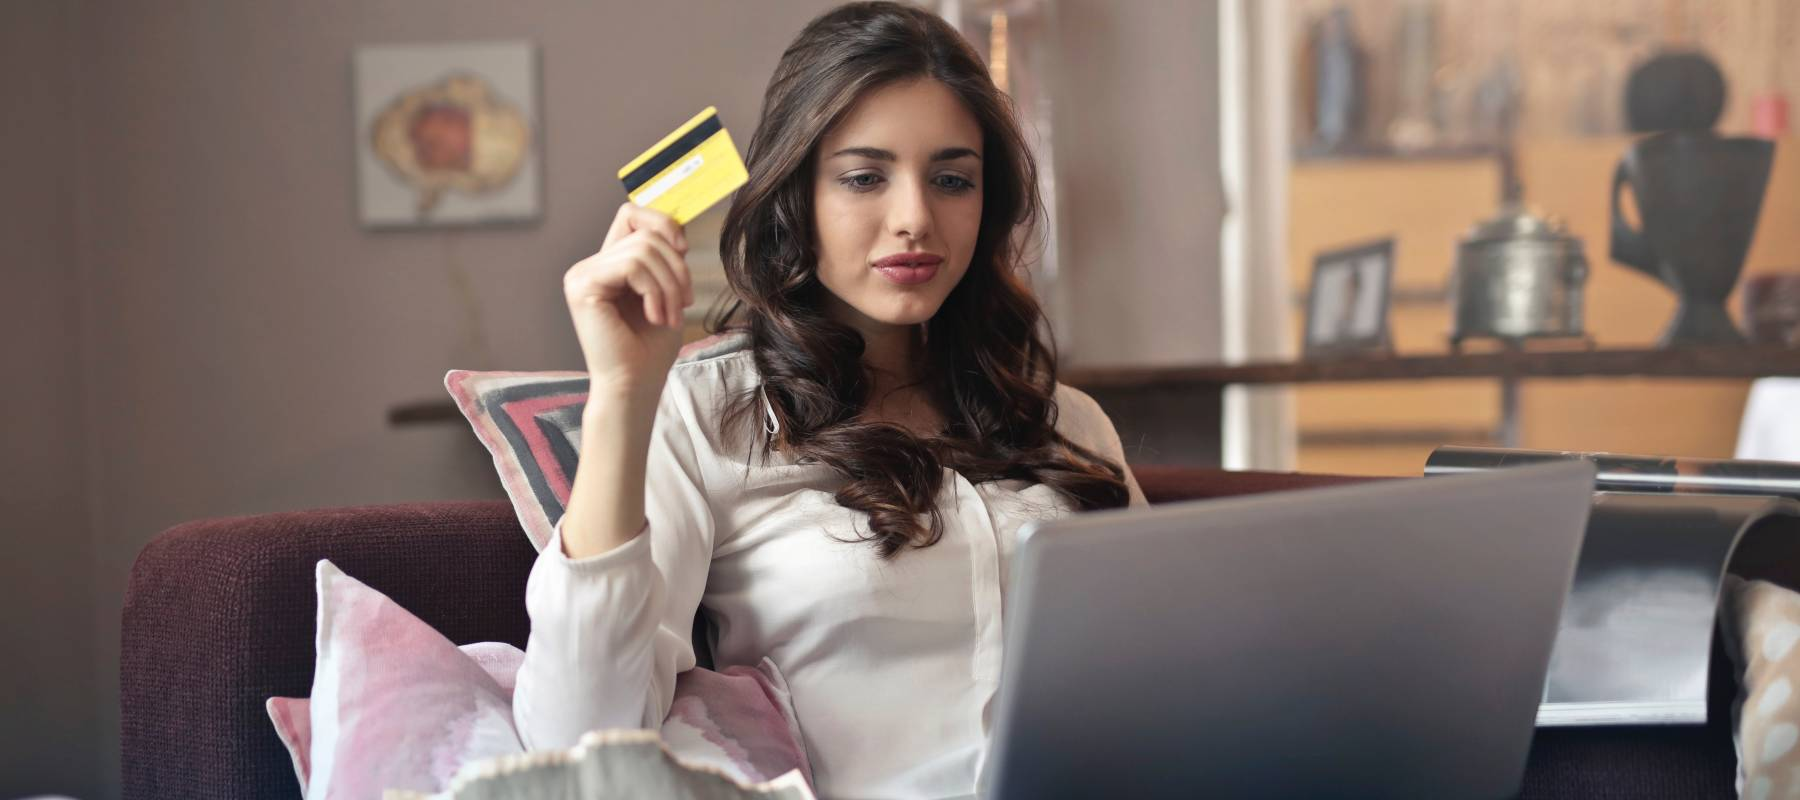 Woman holding credit card and looking at her laptop computer